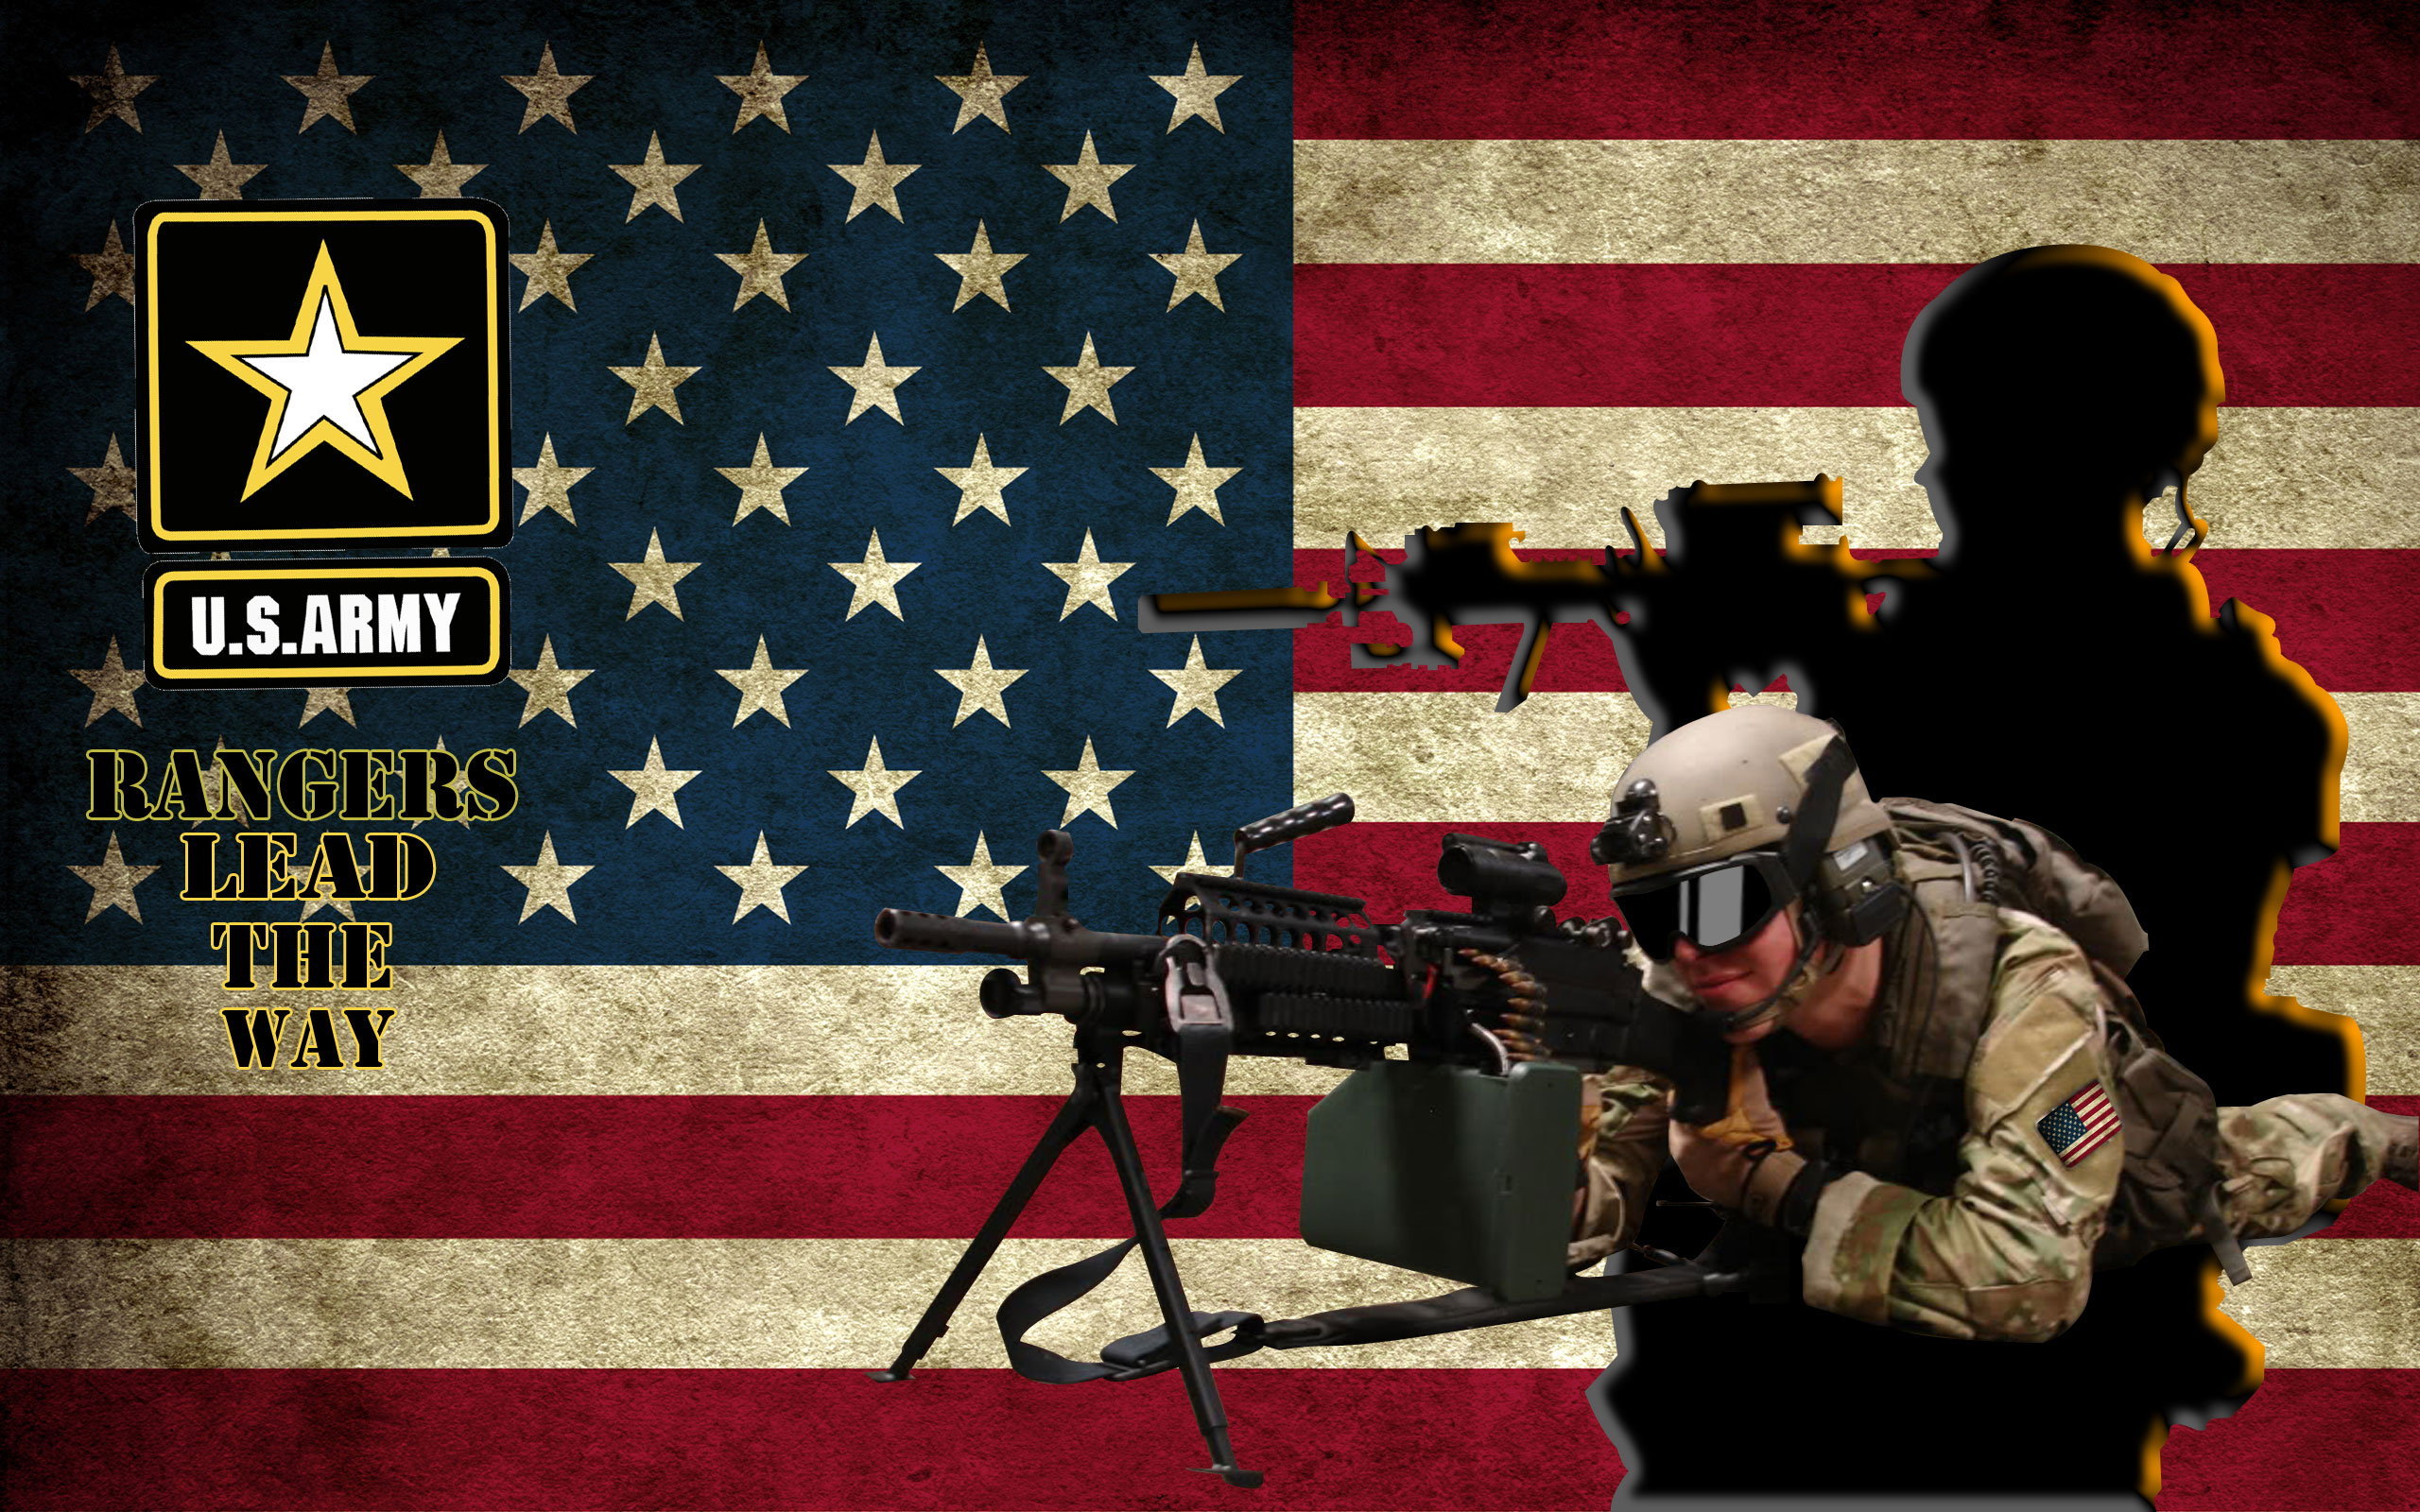 army rangers wallpaper by ArMoRlEsSNIPER